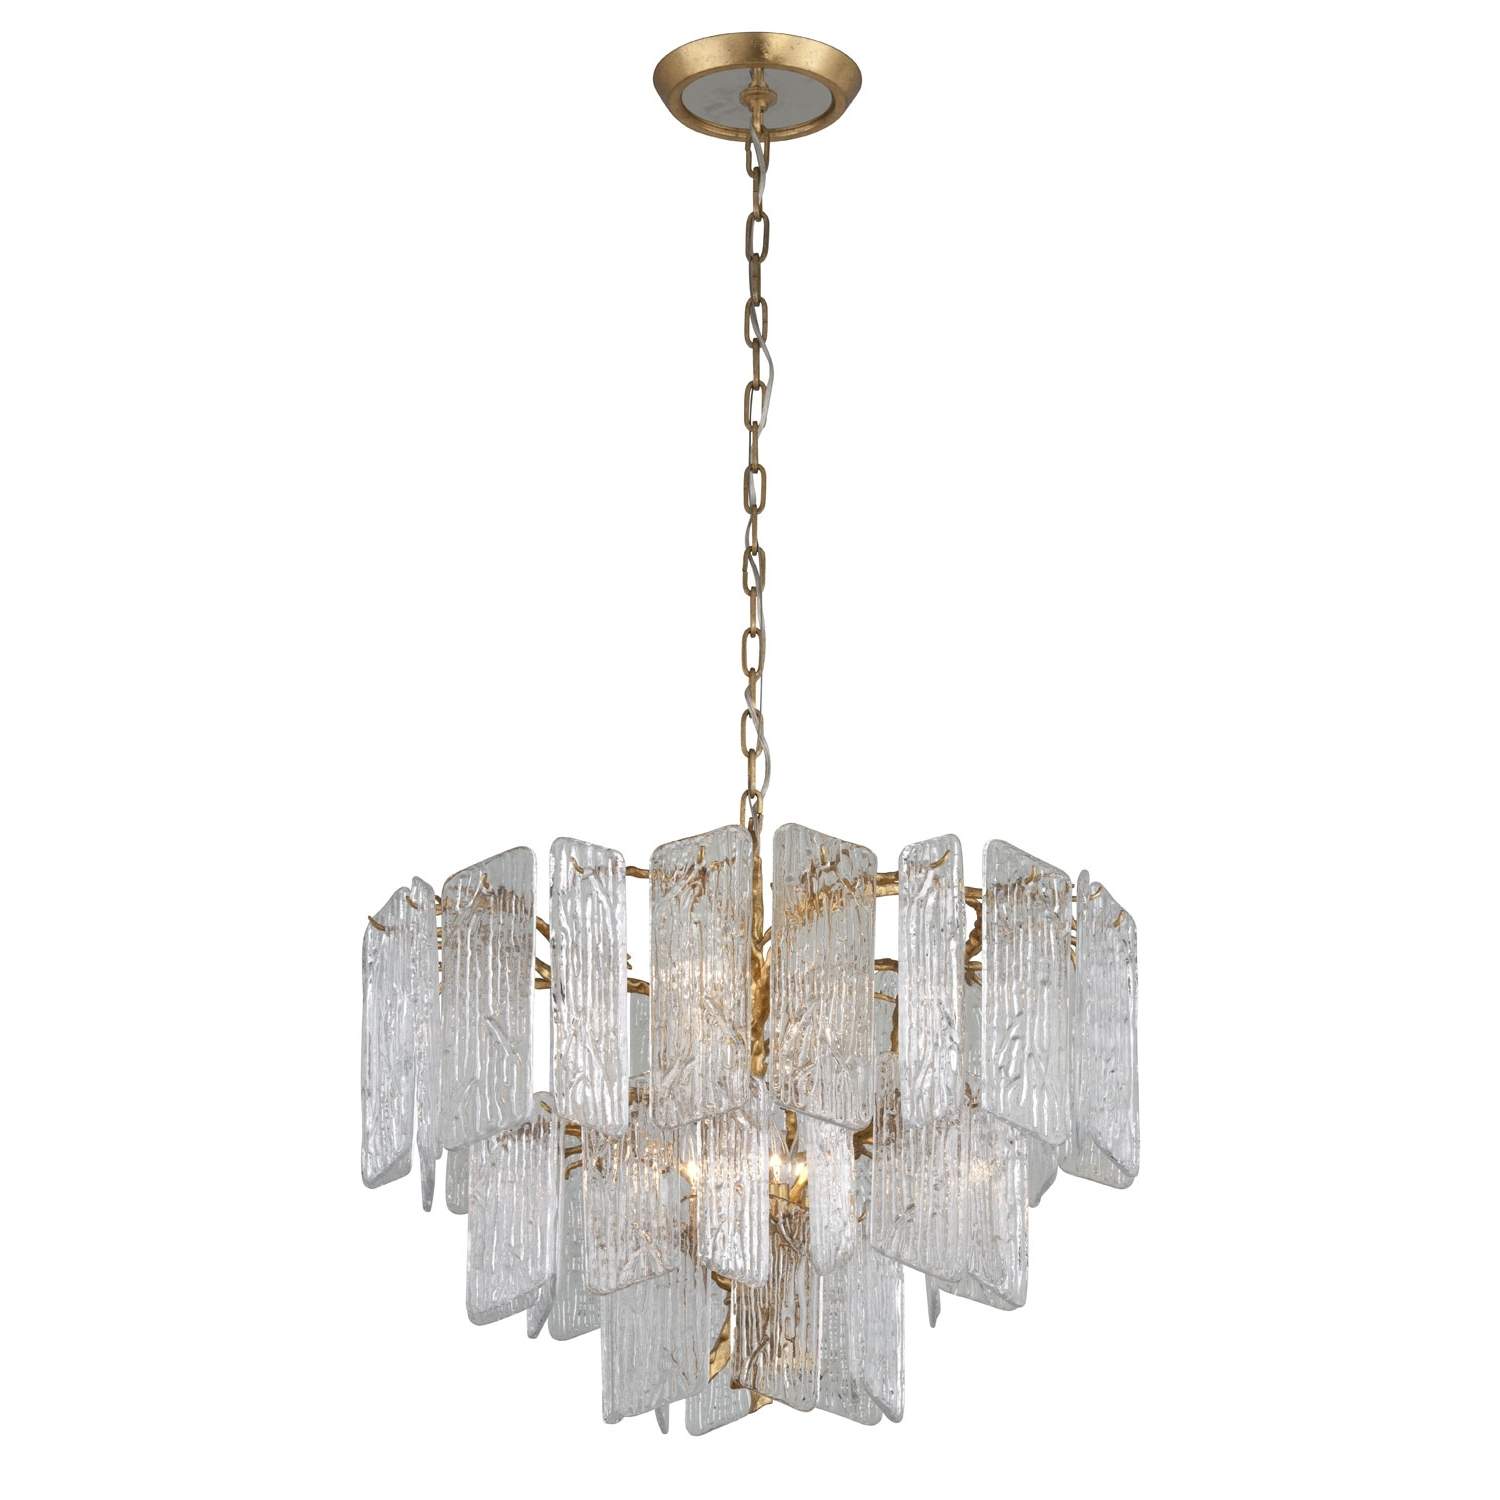 Over 300 Chandelier Styles To With Fashionable Art Deco Chandeliers (View 9 of 15)